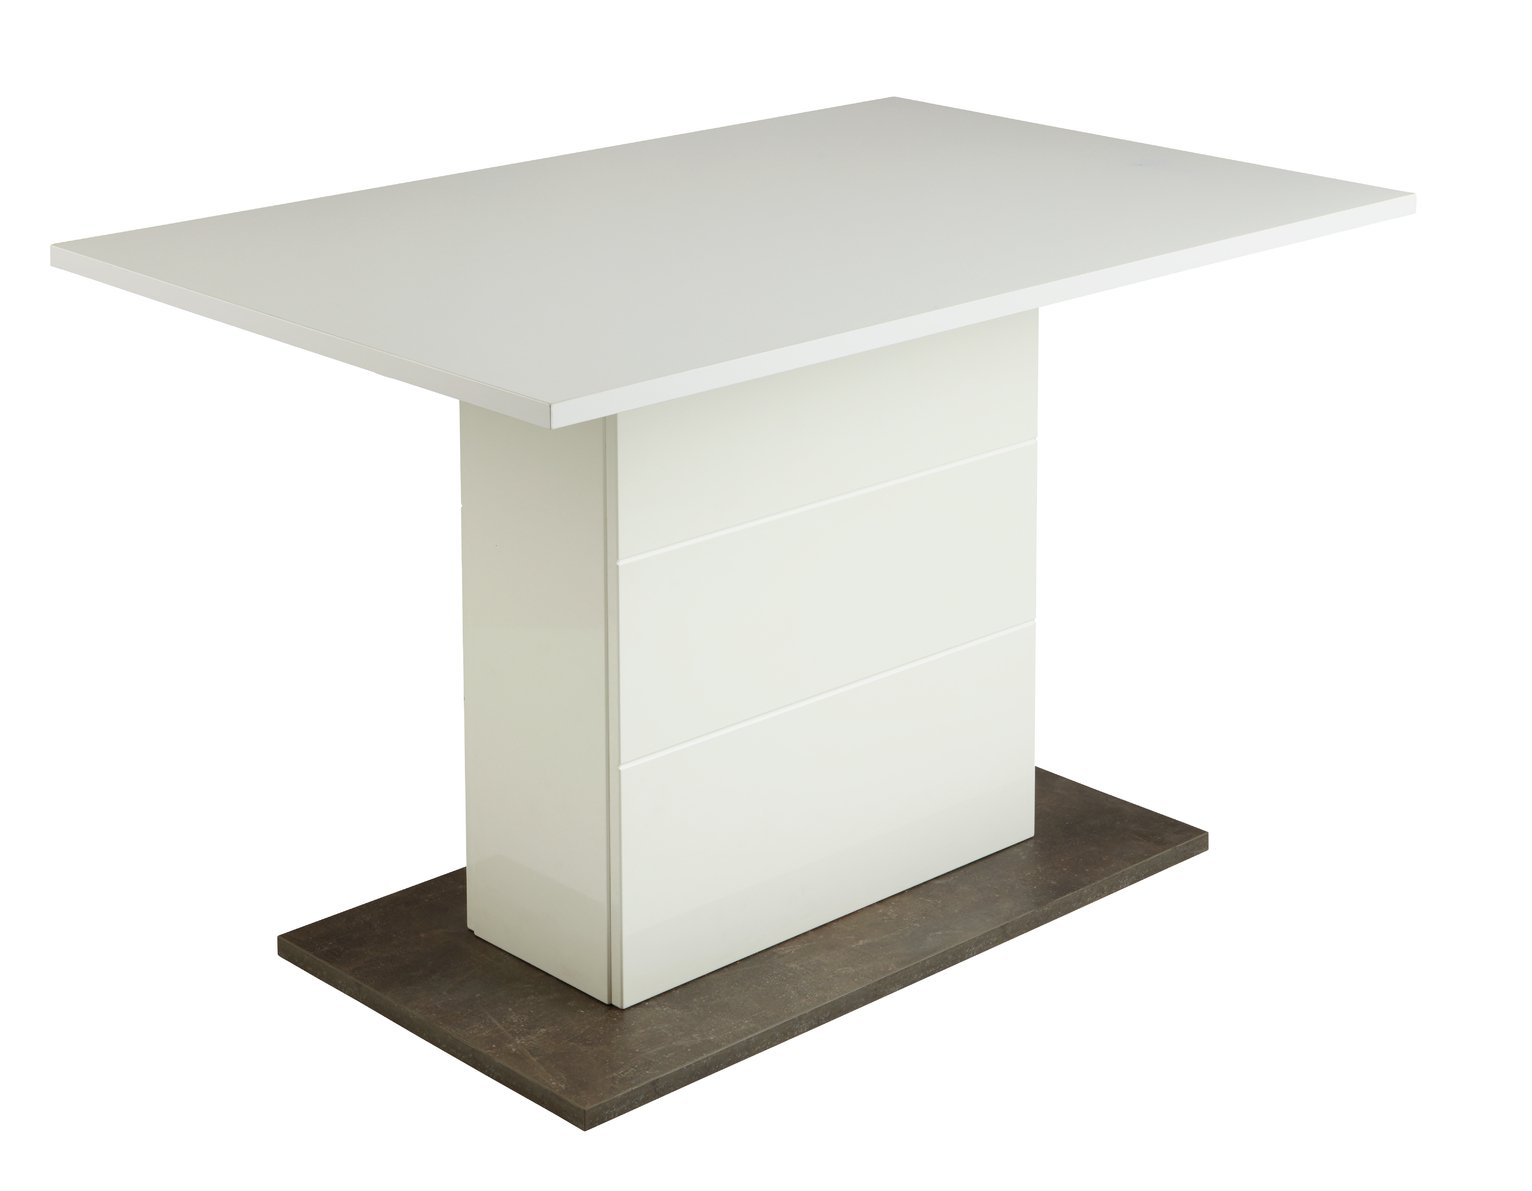 Argos Home Holborn Gloss Pedestal 4 Seater Dining Table